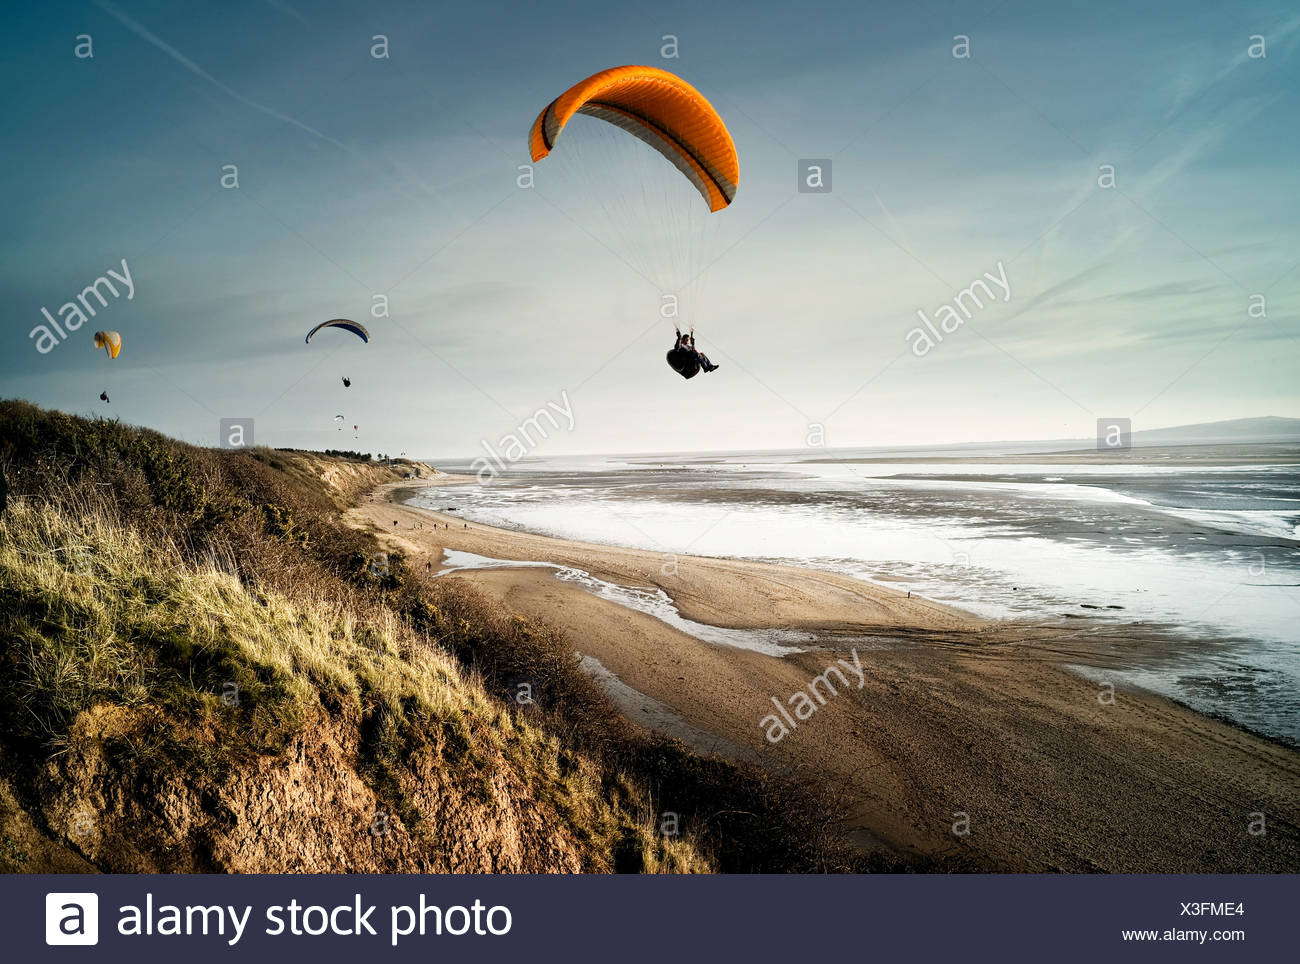 Hang gliders over beach - Stock Image